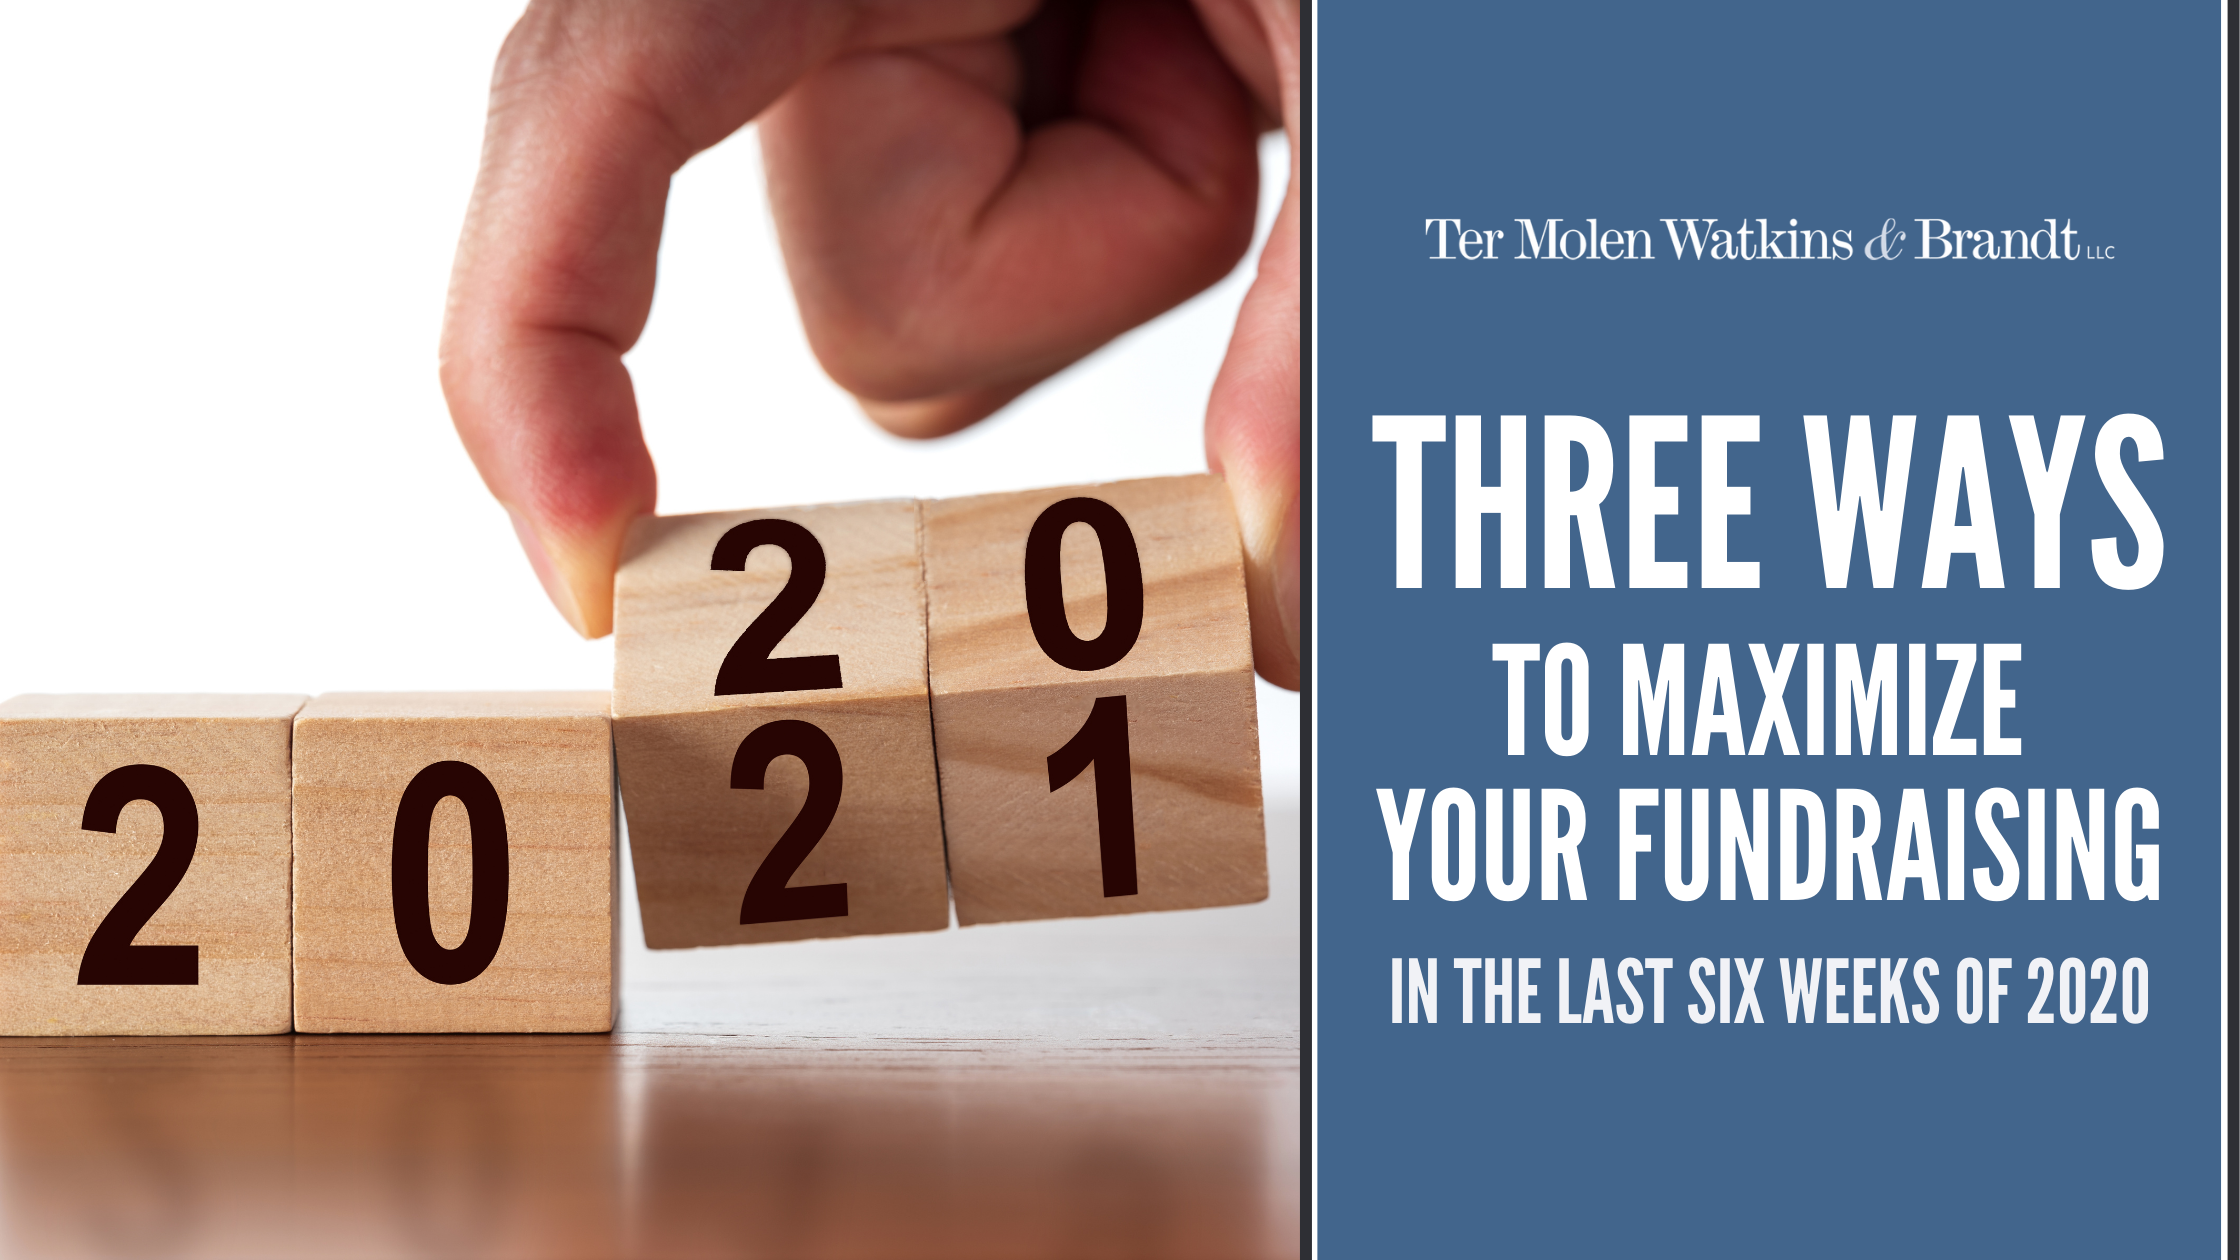 Three Ways to Maximize your Fundraising in the last six weeks of 2020